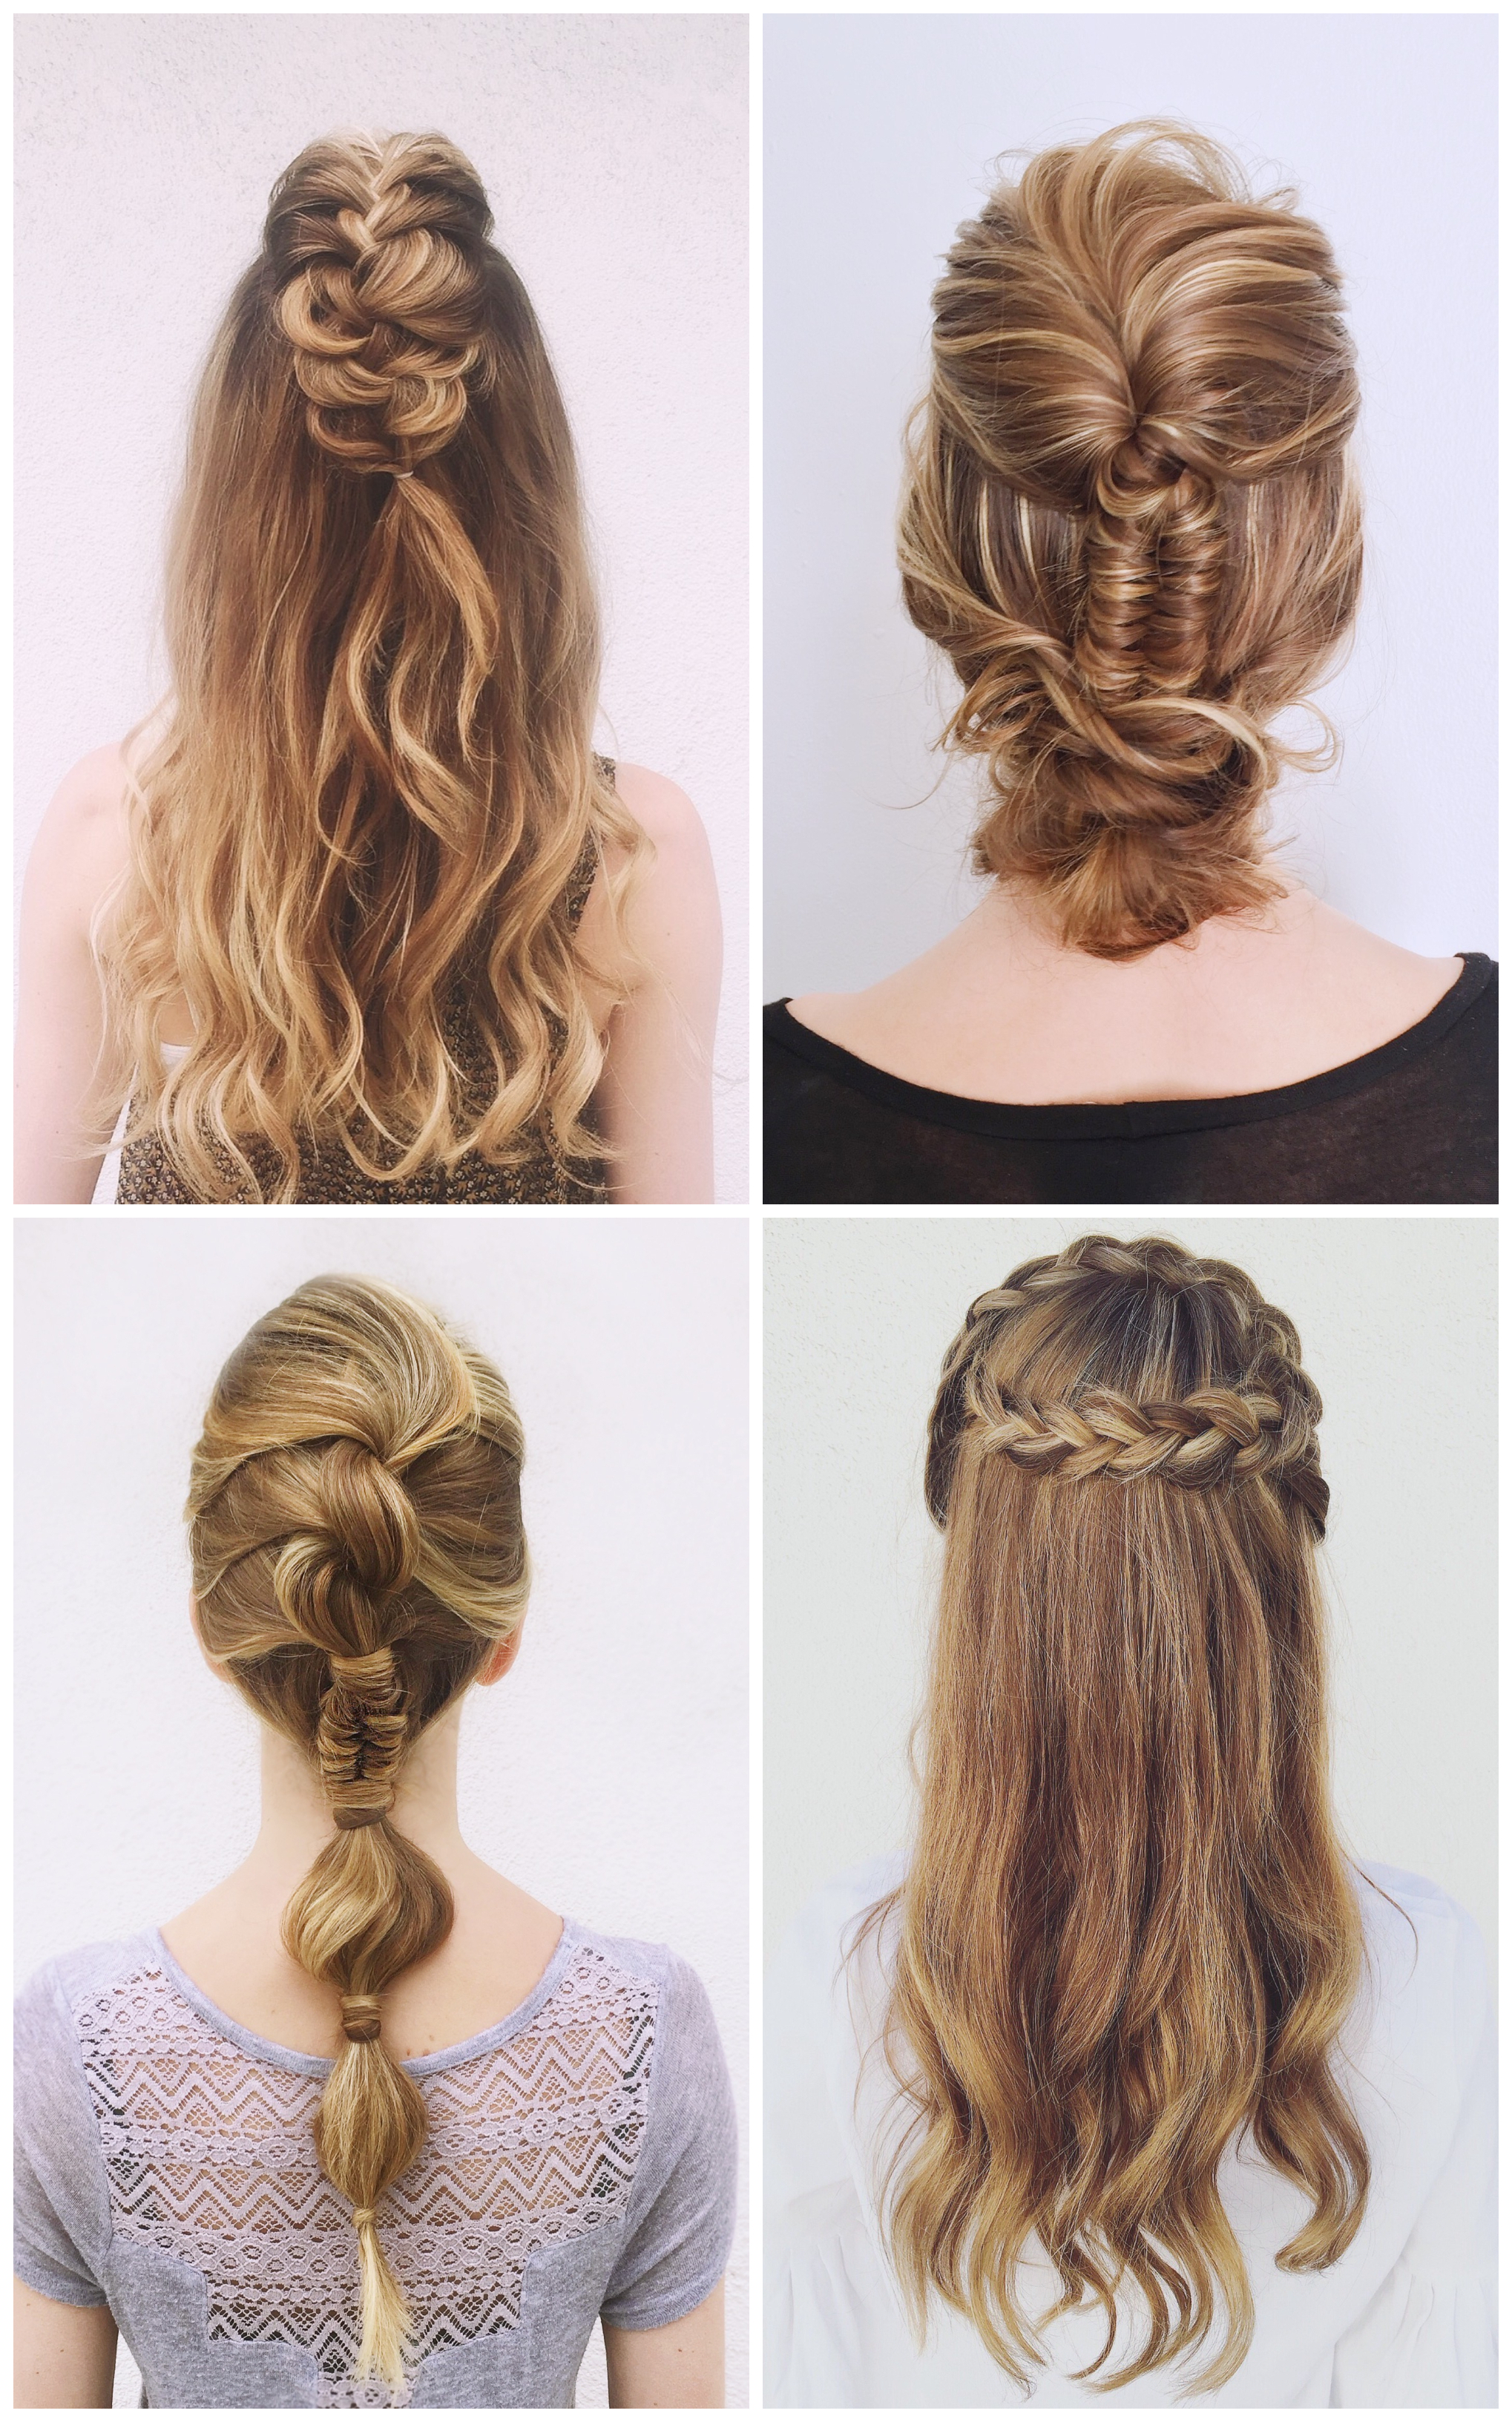 20 Braided Prom Hairstyles For Stylish Girls In Well Liked Classic Roll Prom Updos With Braid (View 2 of 20)